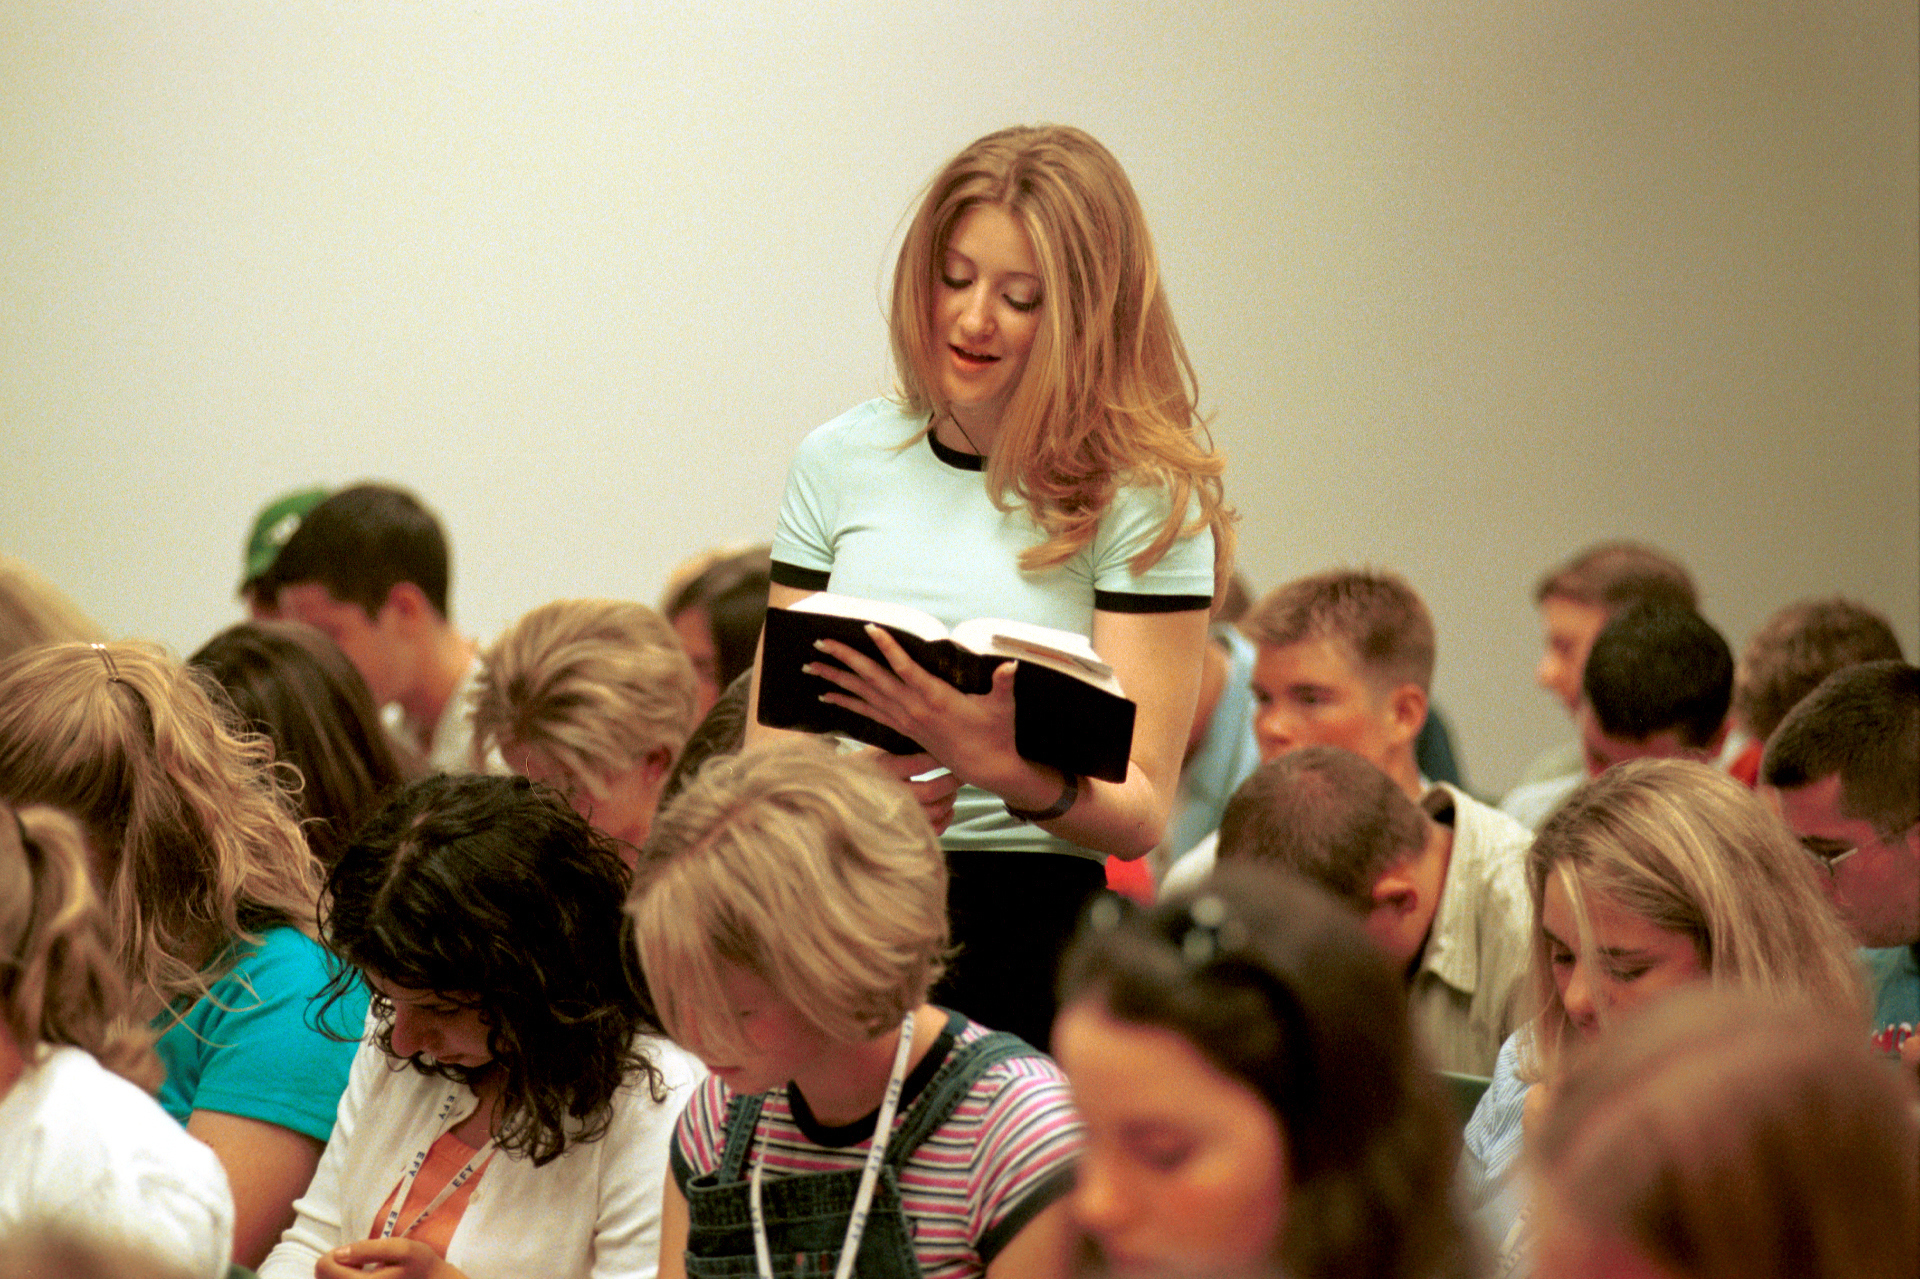 A young woman reads a scripture during a class at Especially for Youth in 2000.